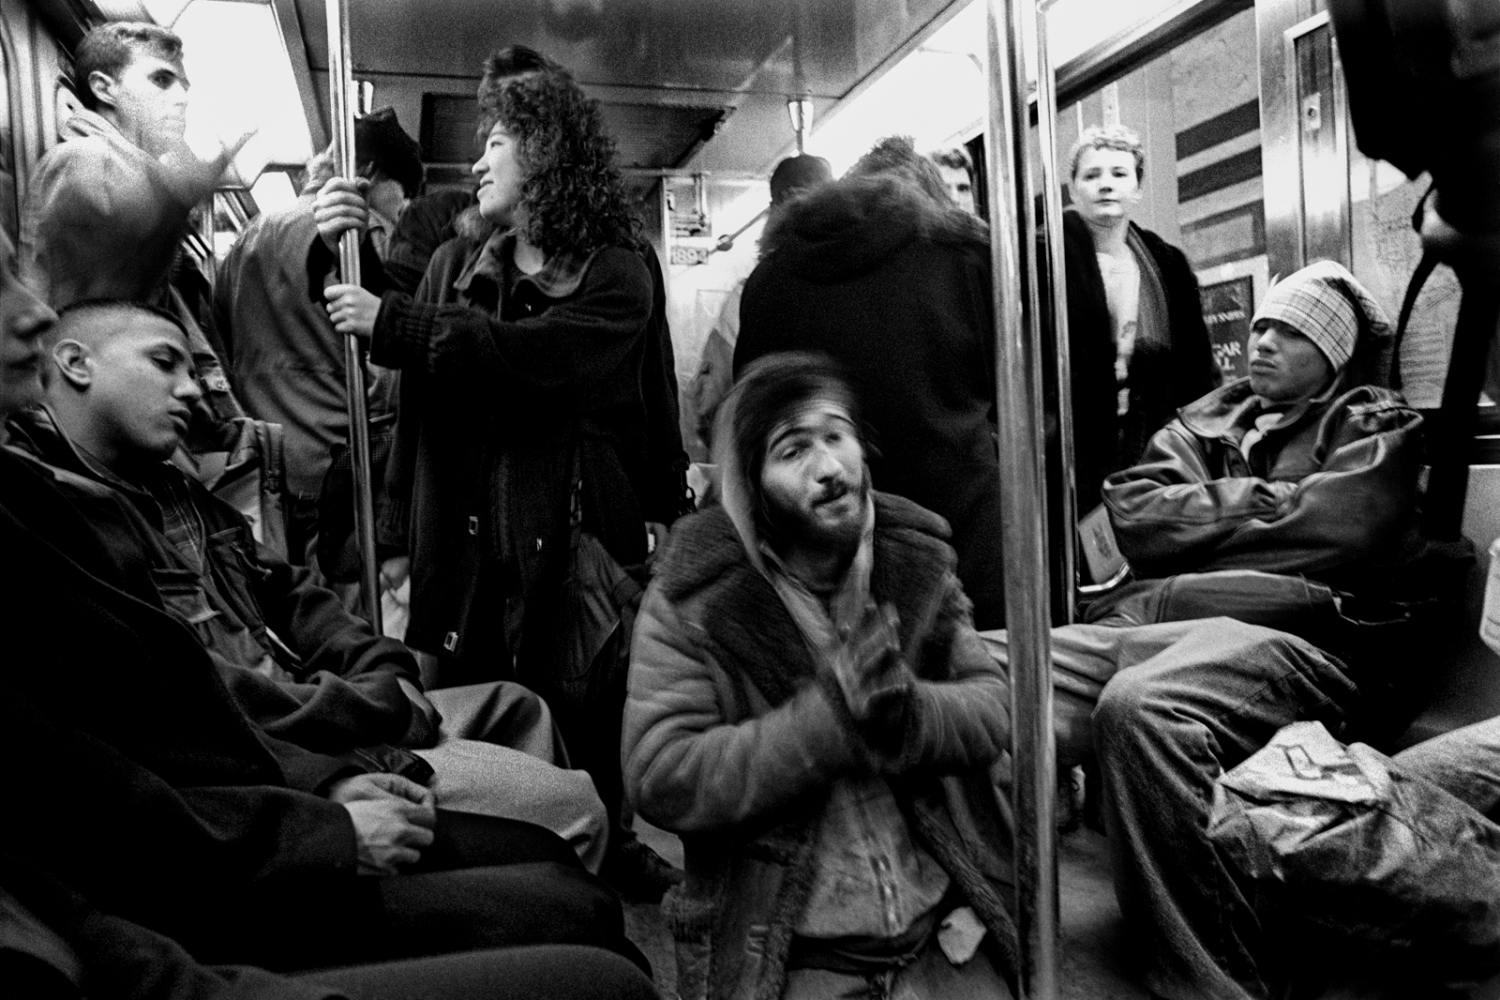 Man begs for help on the 8th Avenue subway, 1994